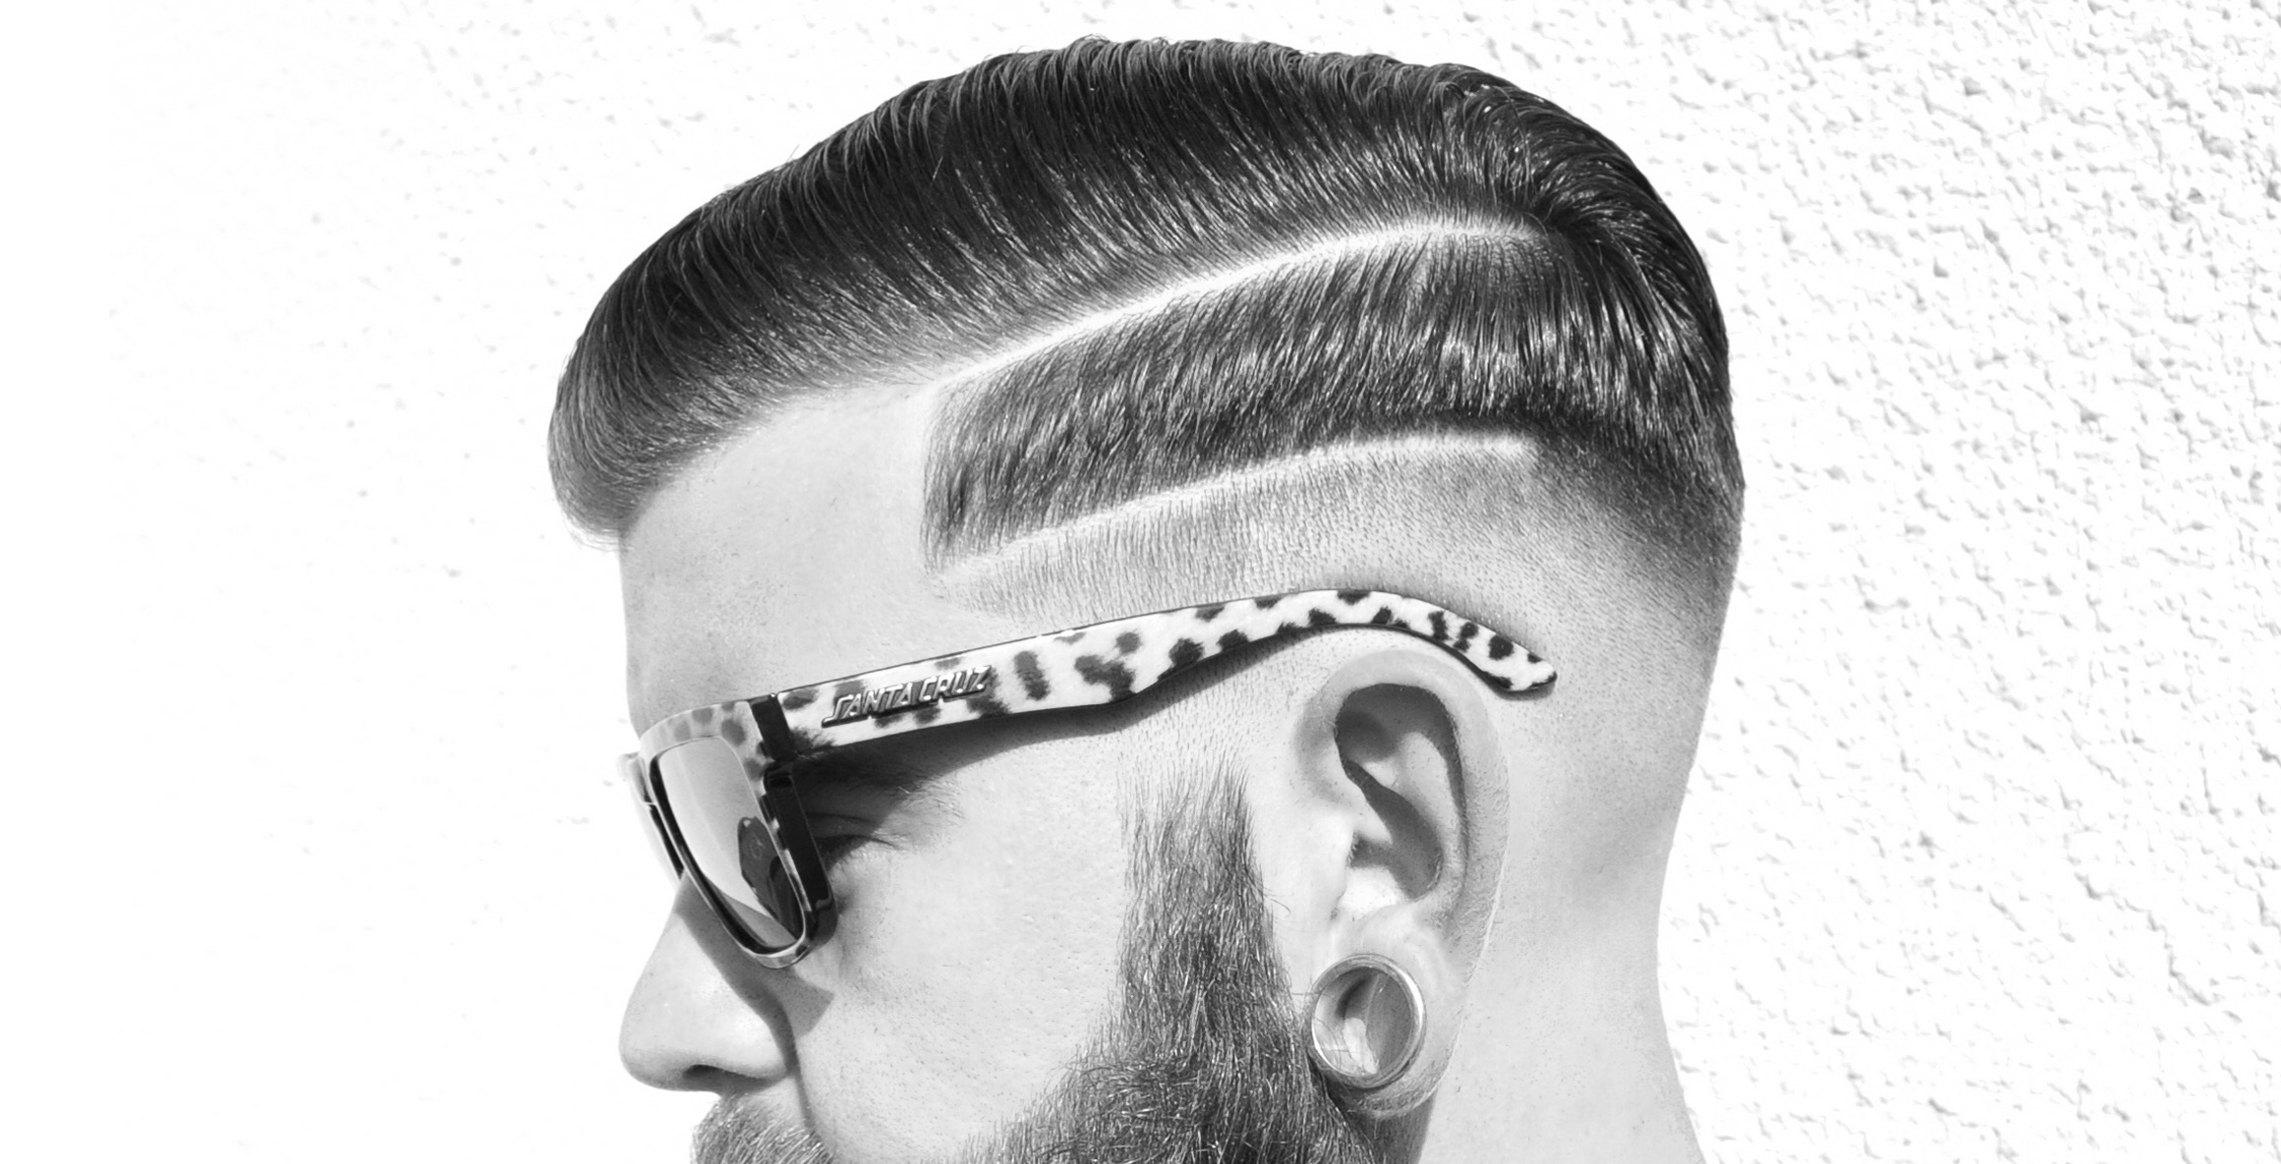 Hard line skin fade, styled with pomade.